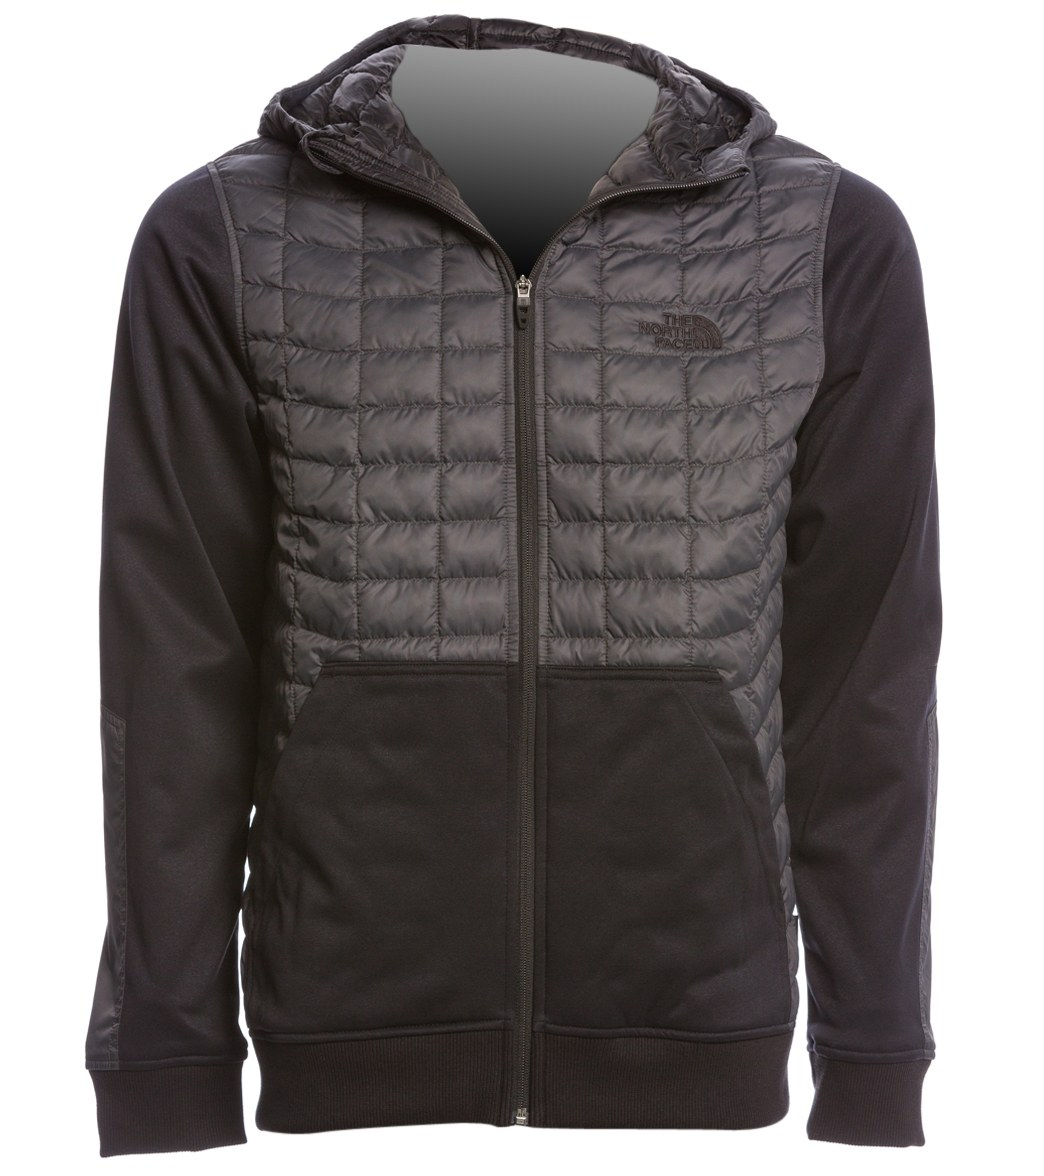 1c48988d5a57 The North Face Men s Kilowatt Thermoball Jacket at SwimOutlet.com ...